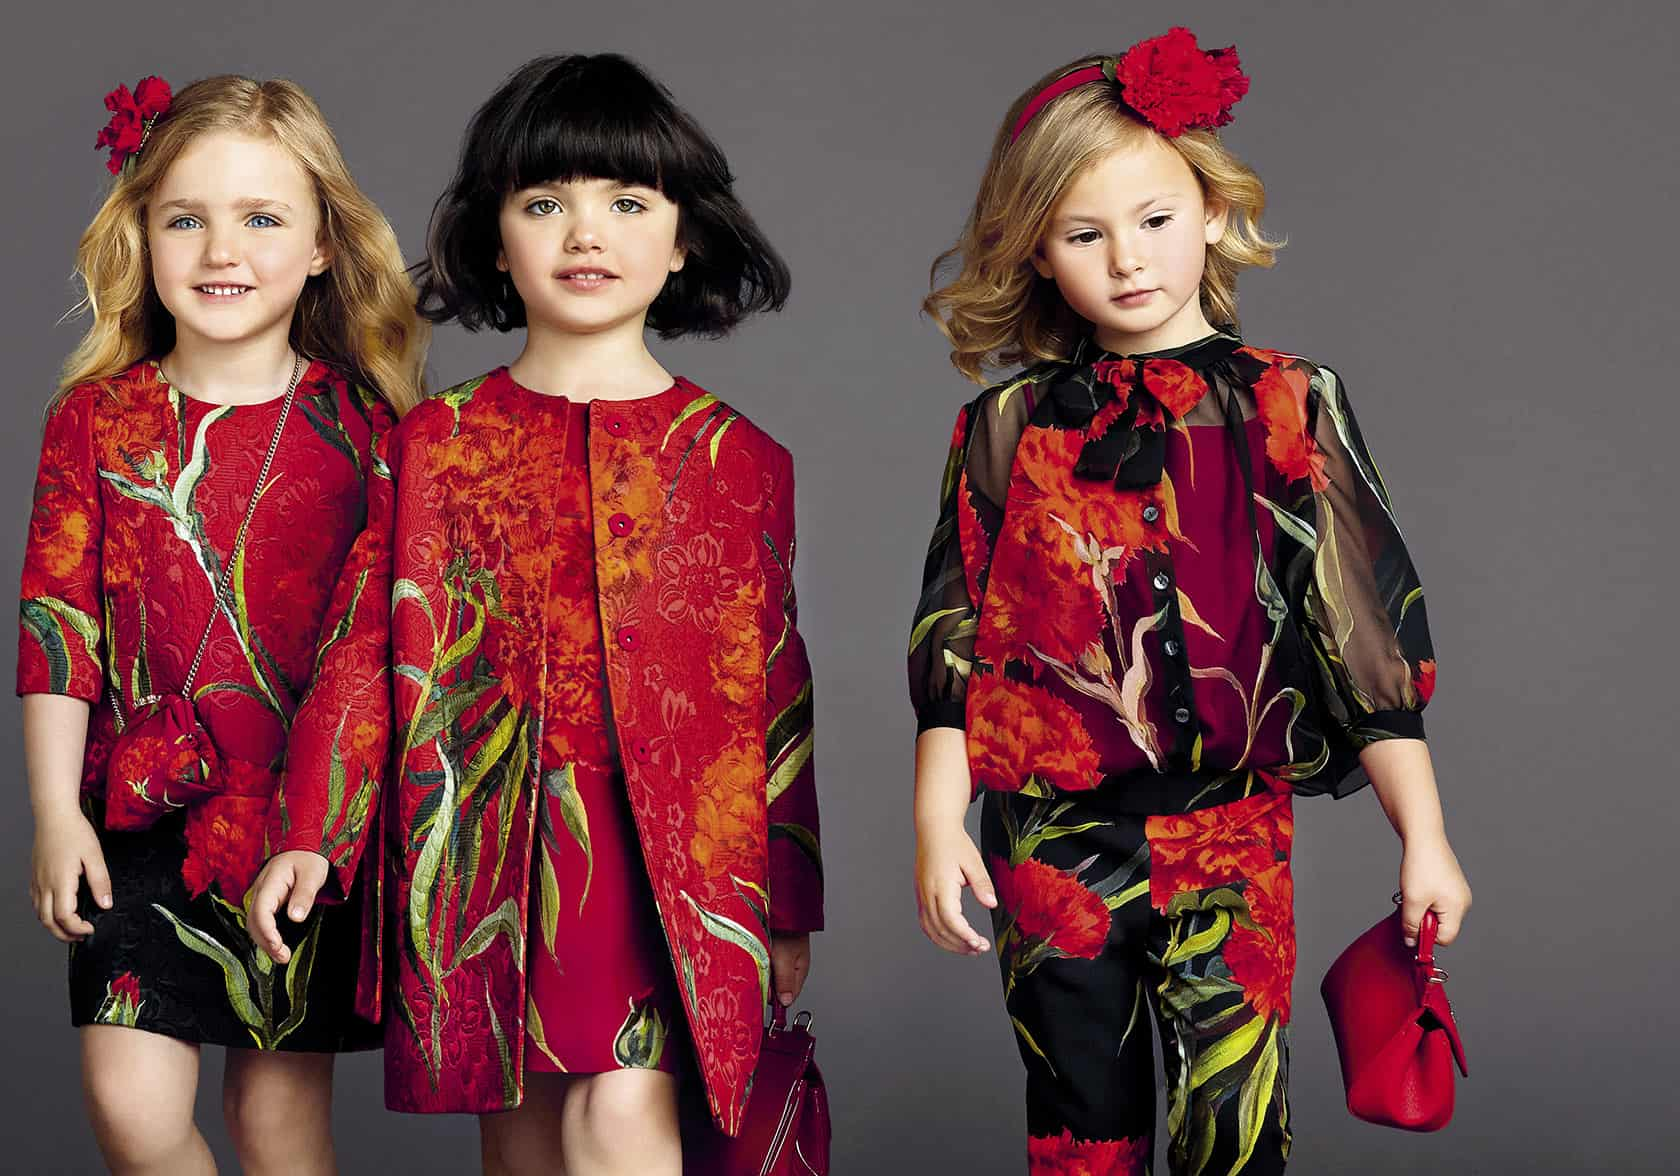 These mini fashion bloggers may not always be dressing themselves, but they know exactly how to work their looks. From sibling duos to Gucci-clad tots, here are 15 insanely fashionable kids (yes.